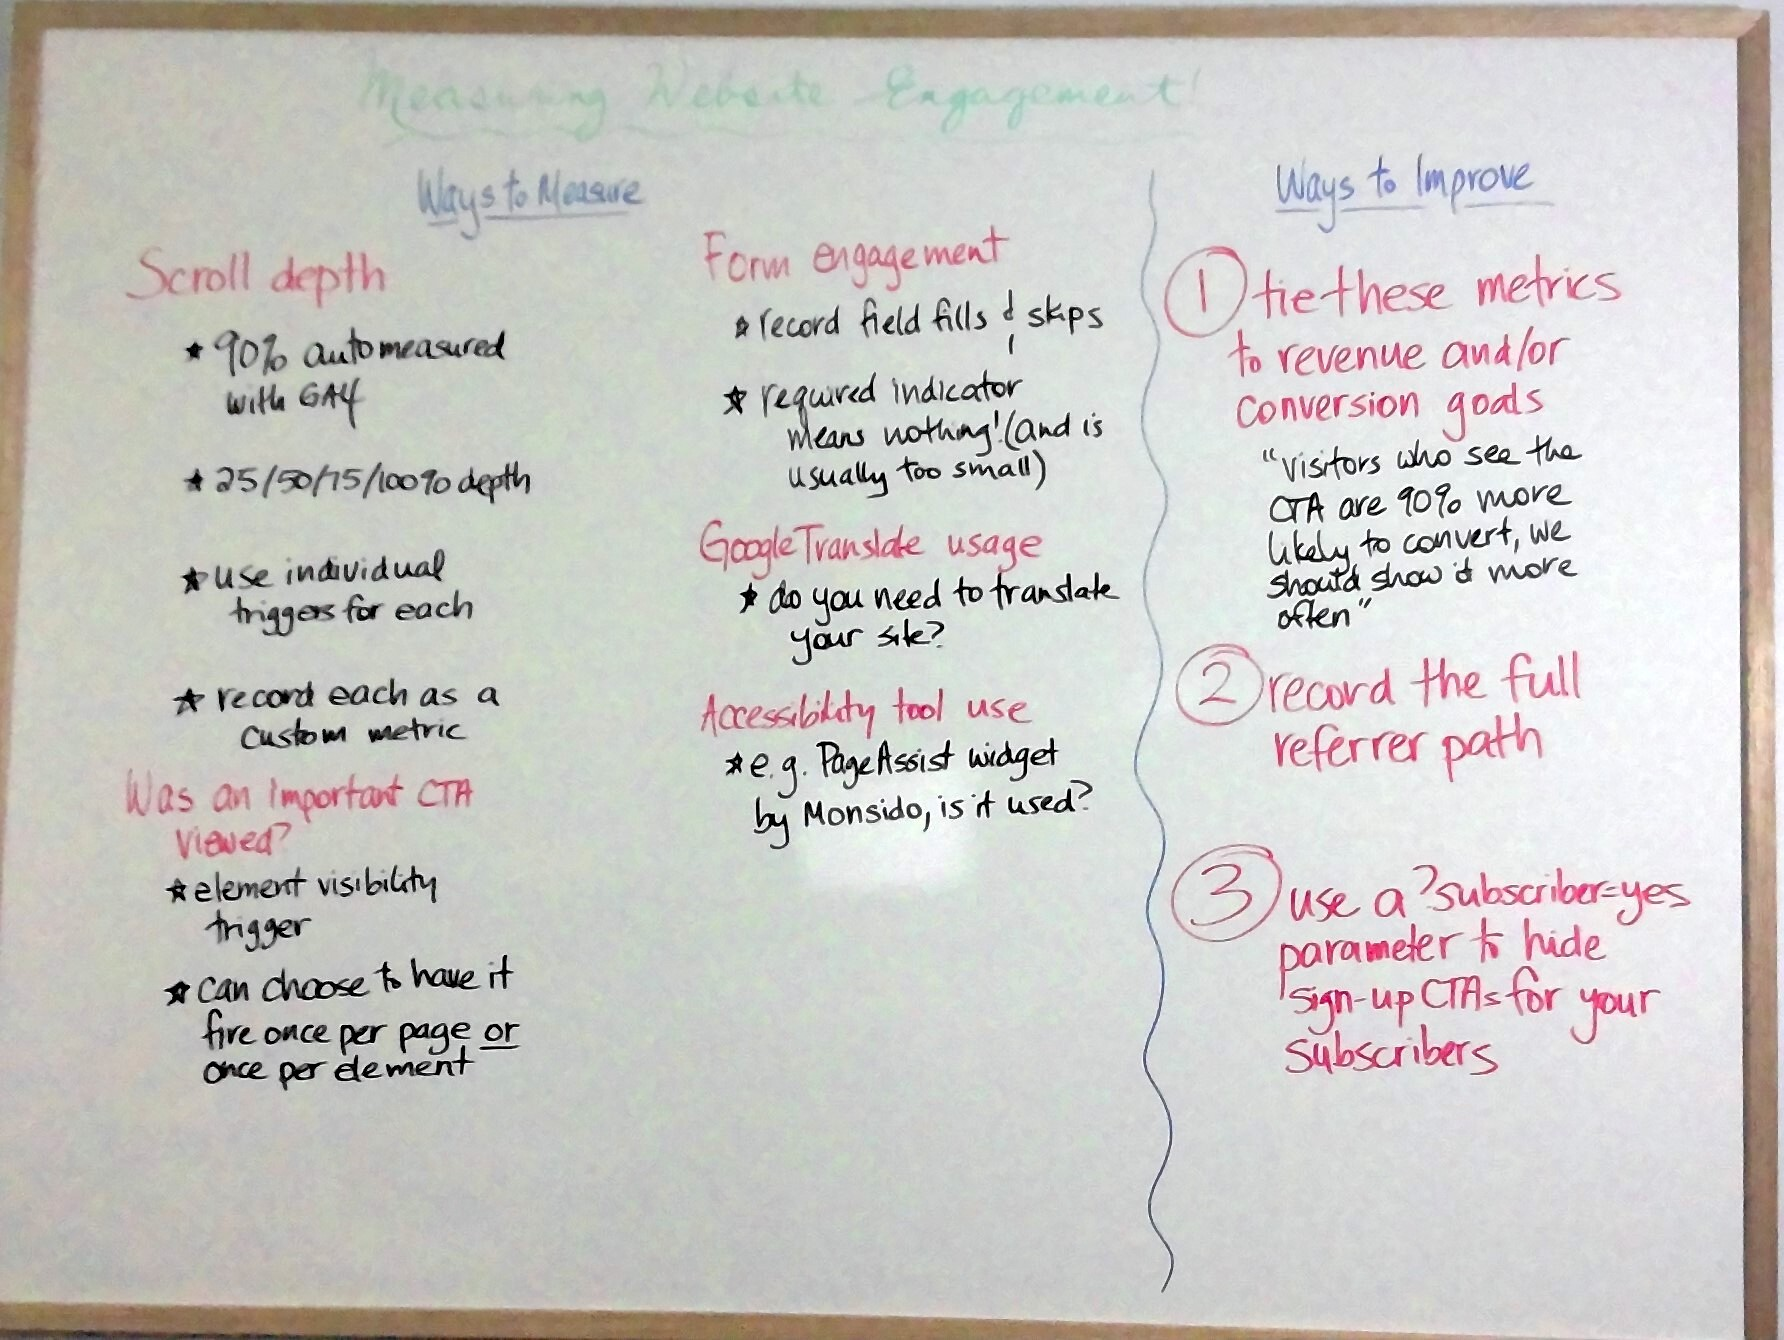 Photo of the whiteboard with tips for measuring and improving website engagement.